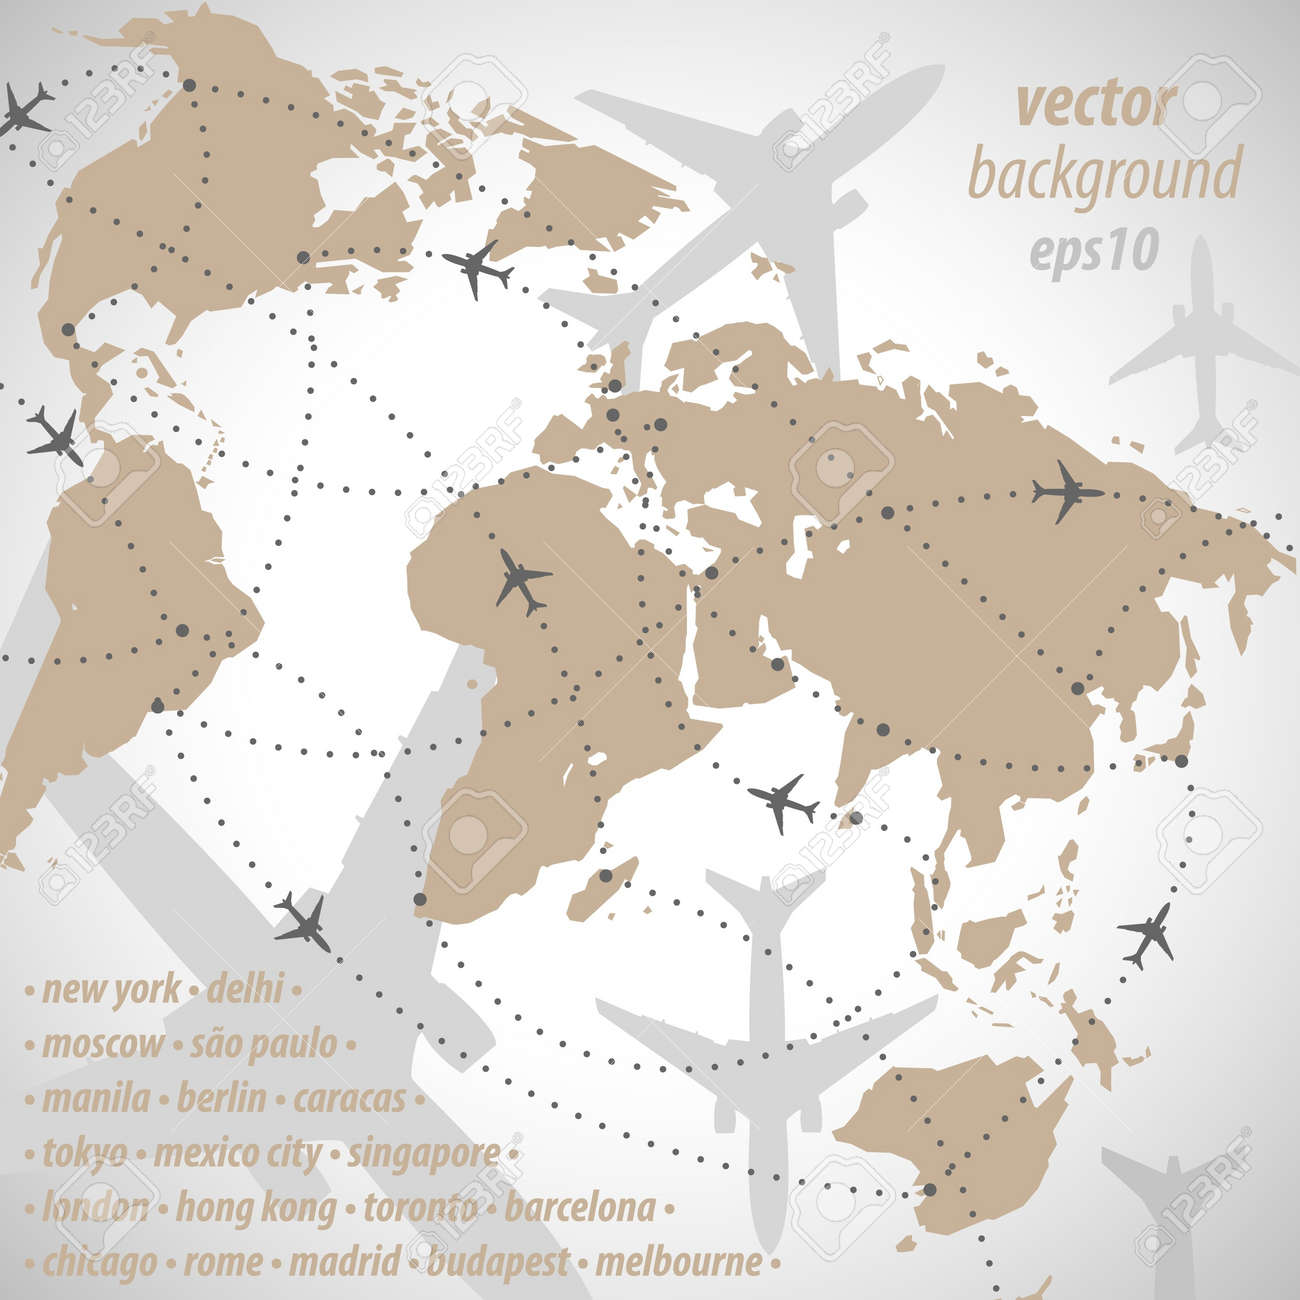 World map flight travel illustration royalty free cliparts vectors vector world map flight travel illustration gumiabroncs Images